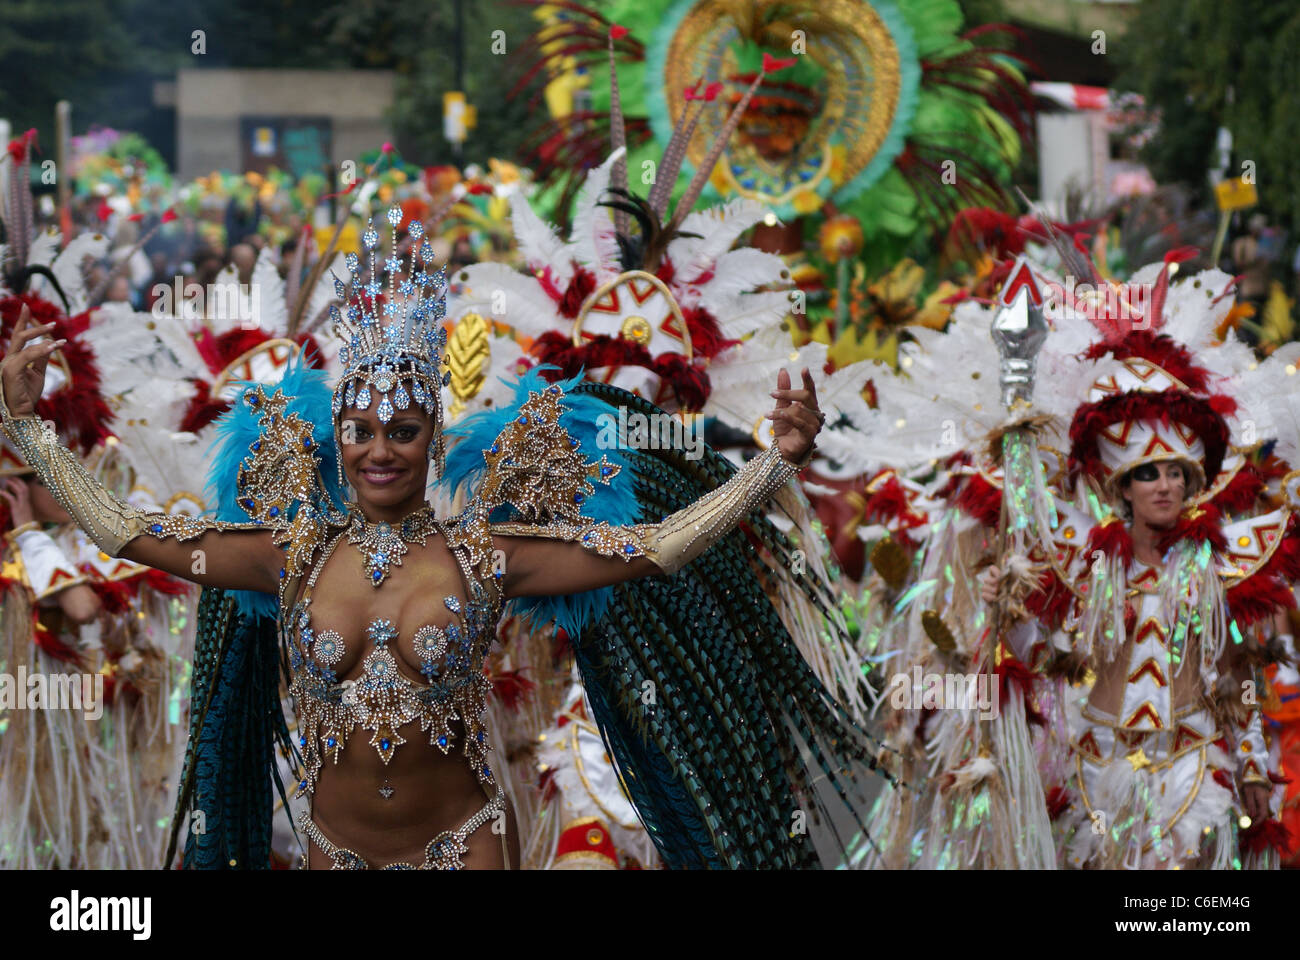 Performers in the Notting Hill Carnival, Europe's biggest festival. - Stock Image